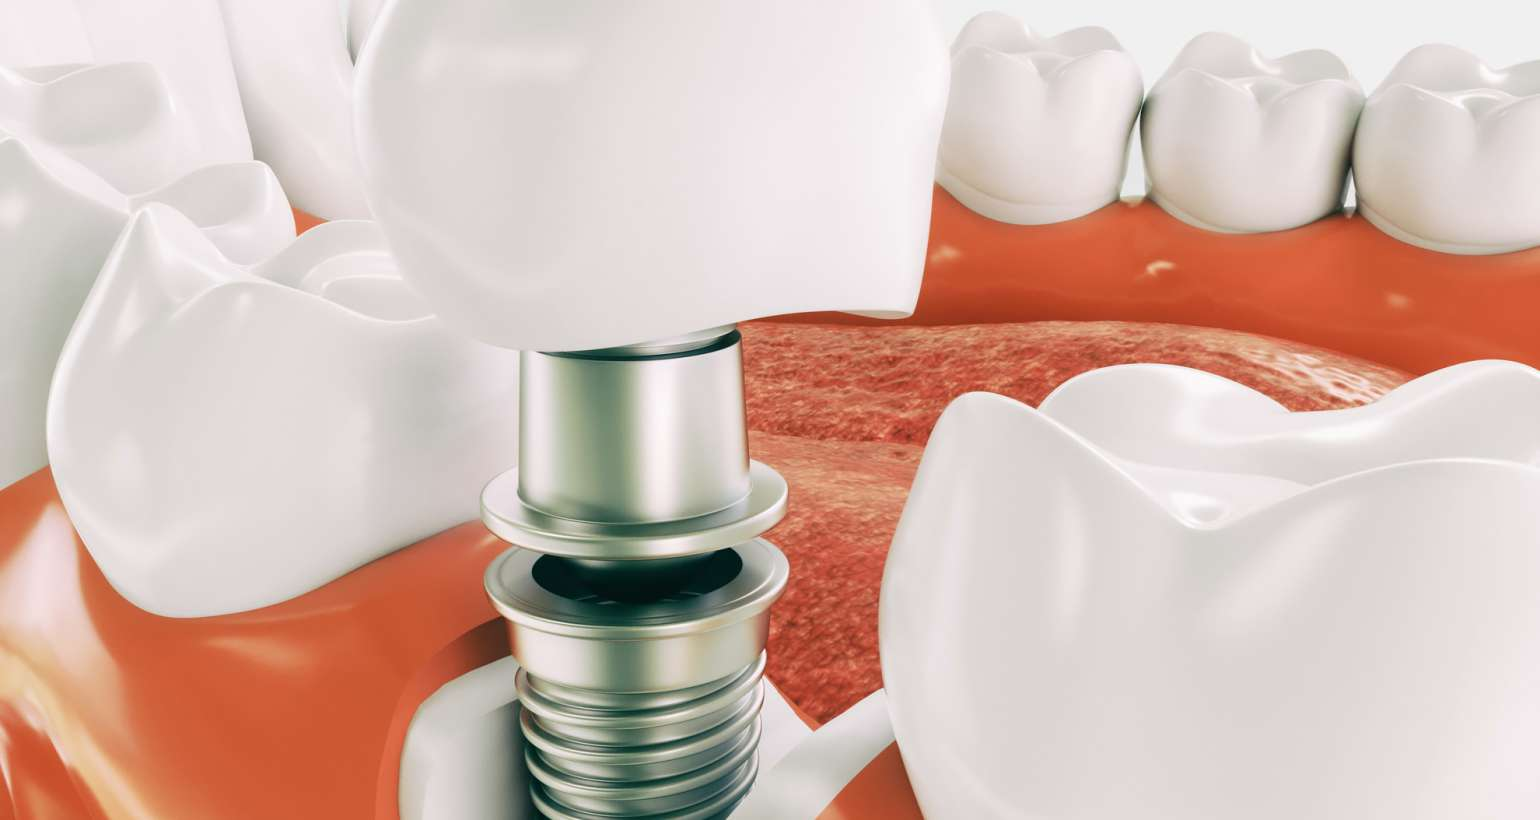 How do you choose the right dental implant training programs?